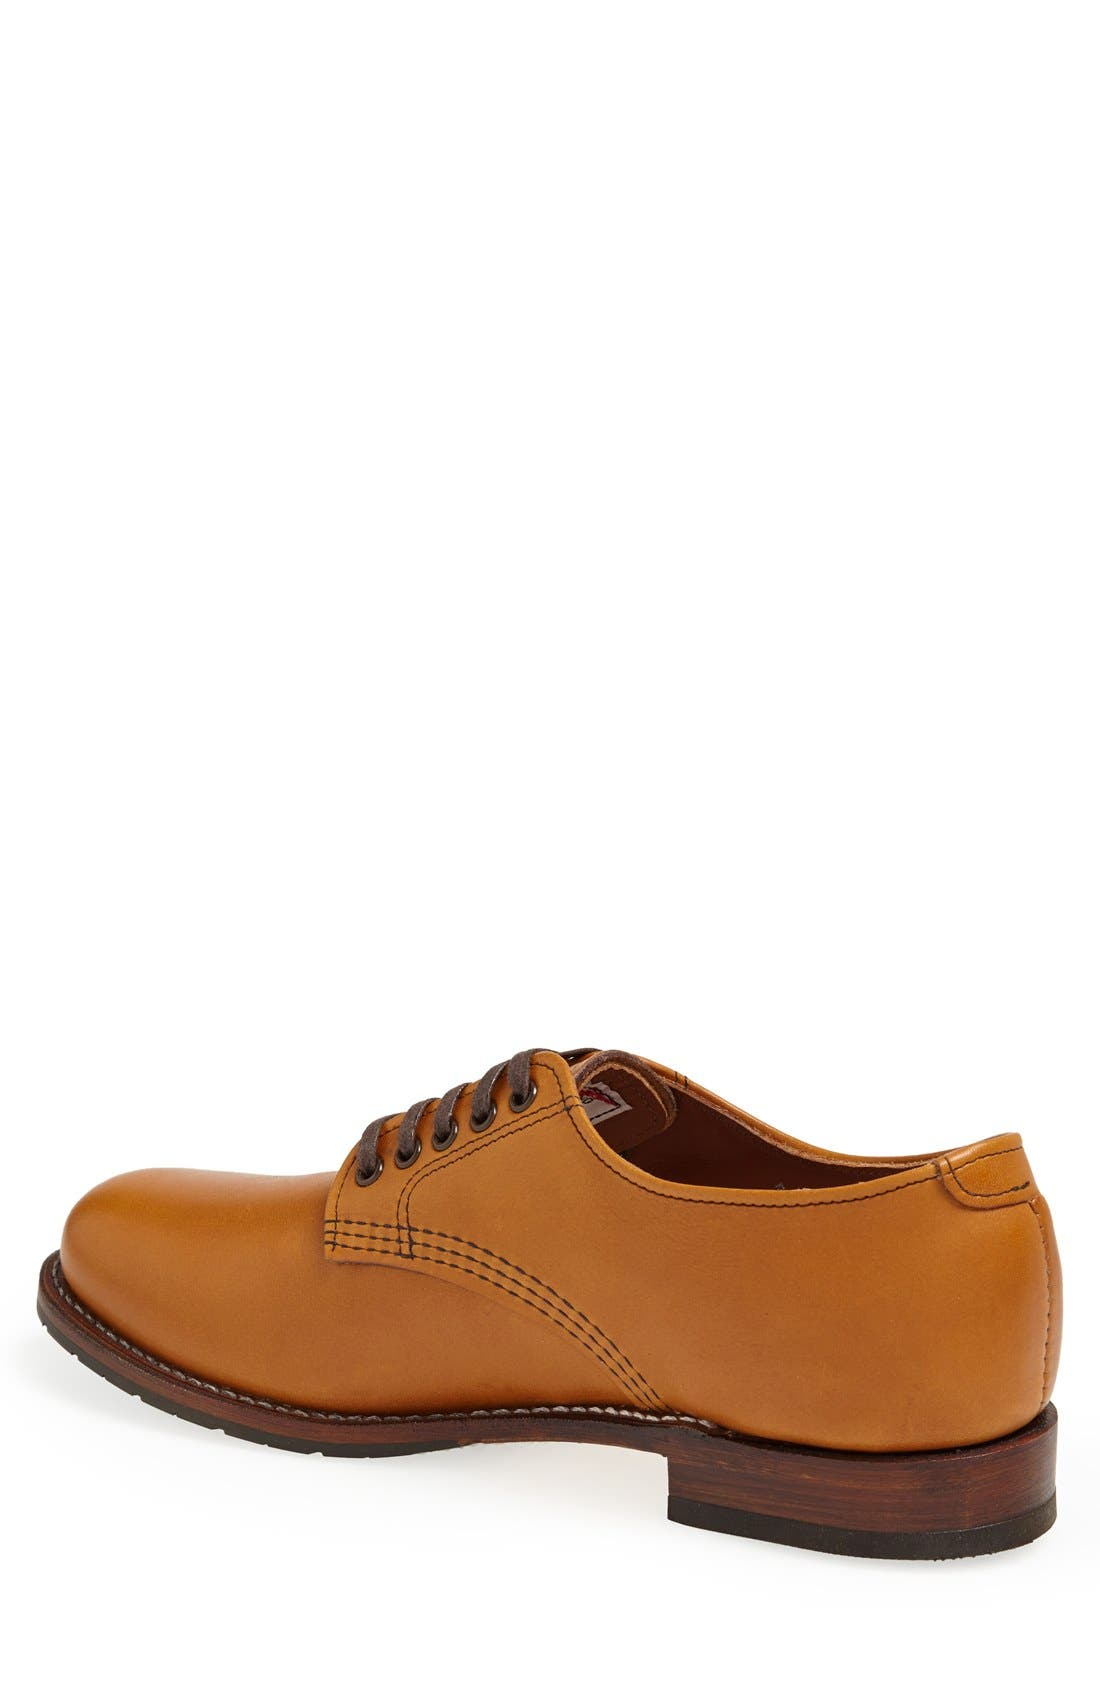 Alternate Image 2  - Red Wing 'Beckman' Derby